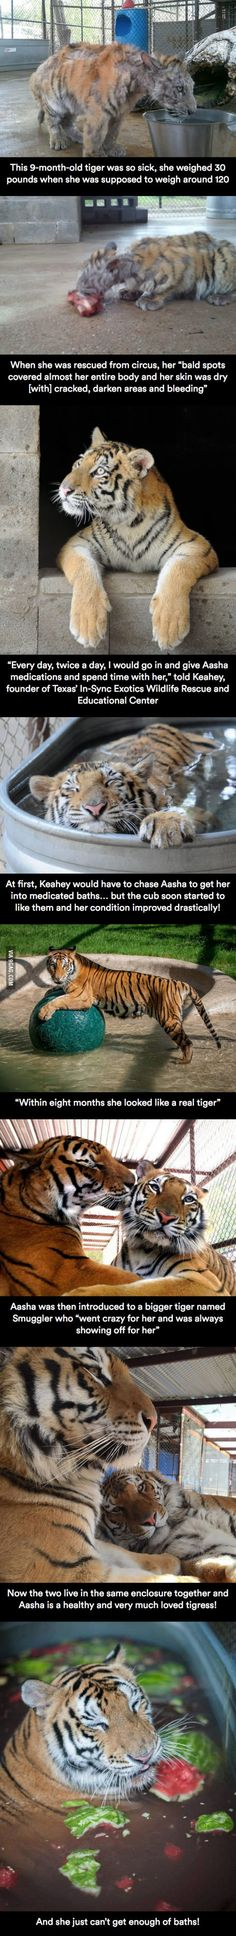 Sick Tiger Cub Gets Rescued From Circus, Makes Incredible Recovery And Finds Love